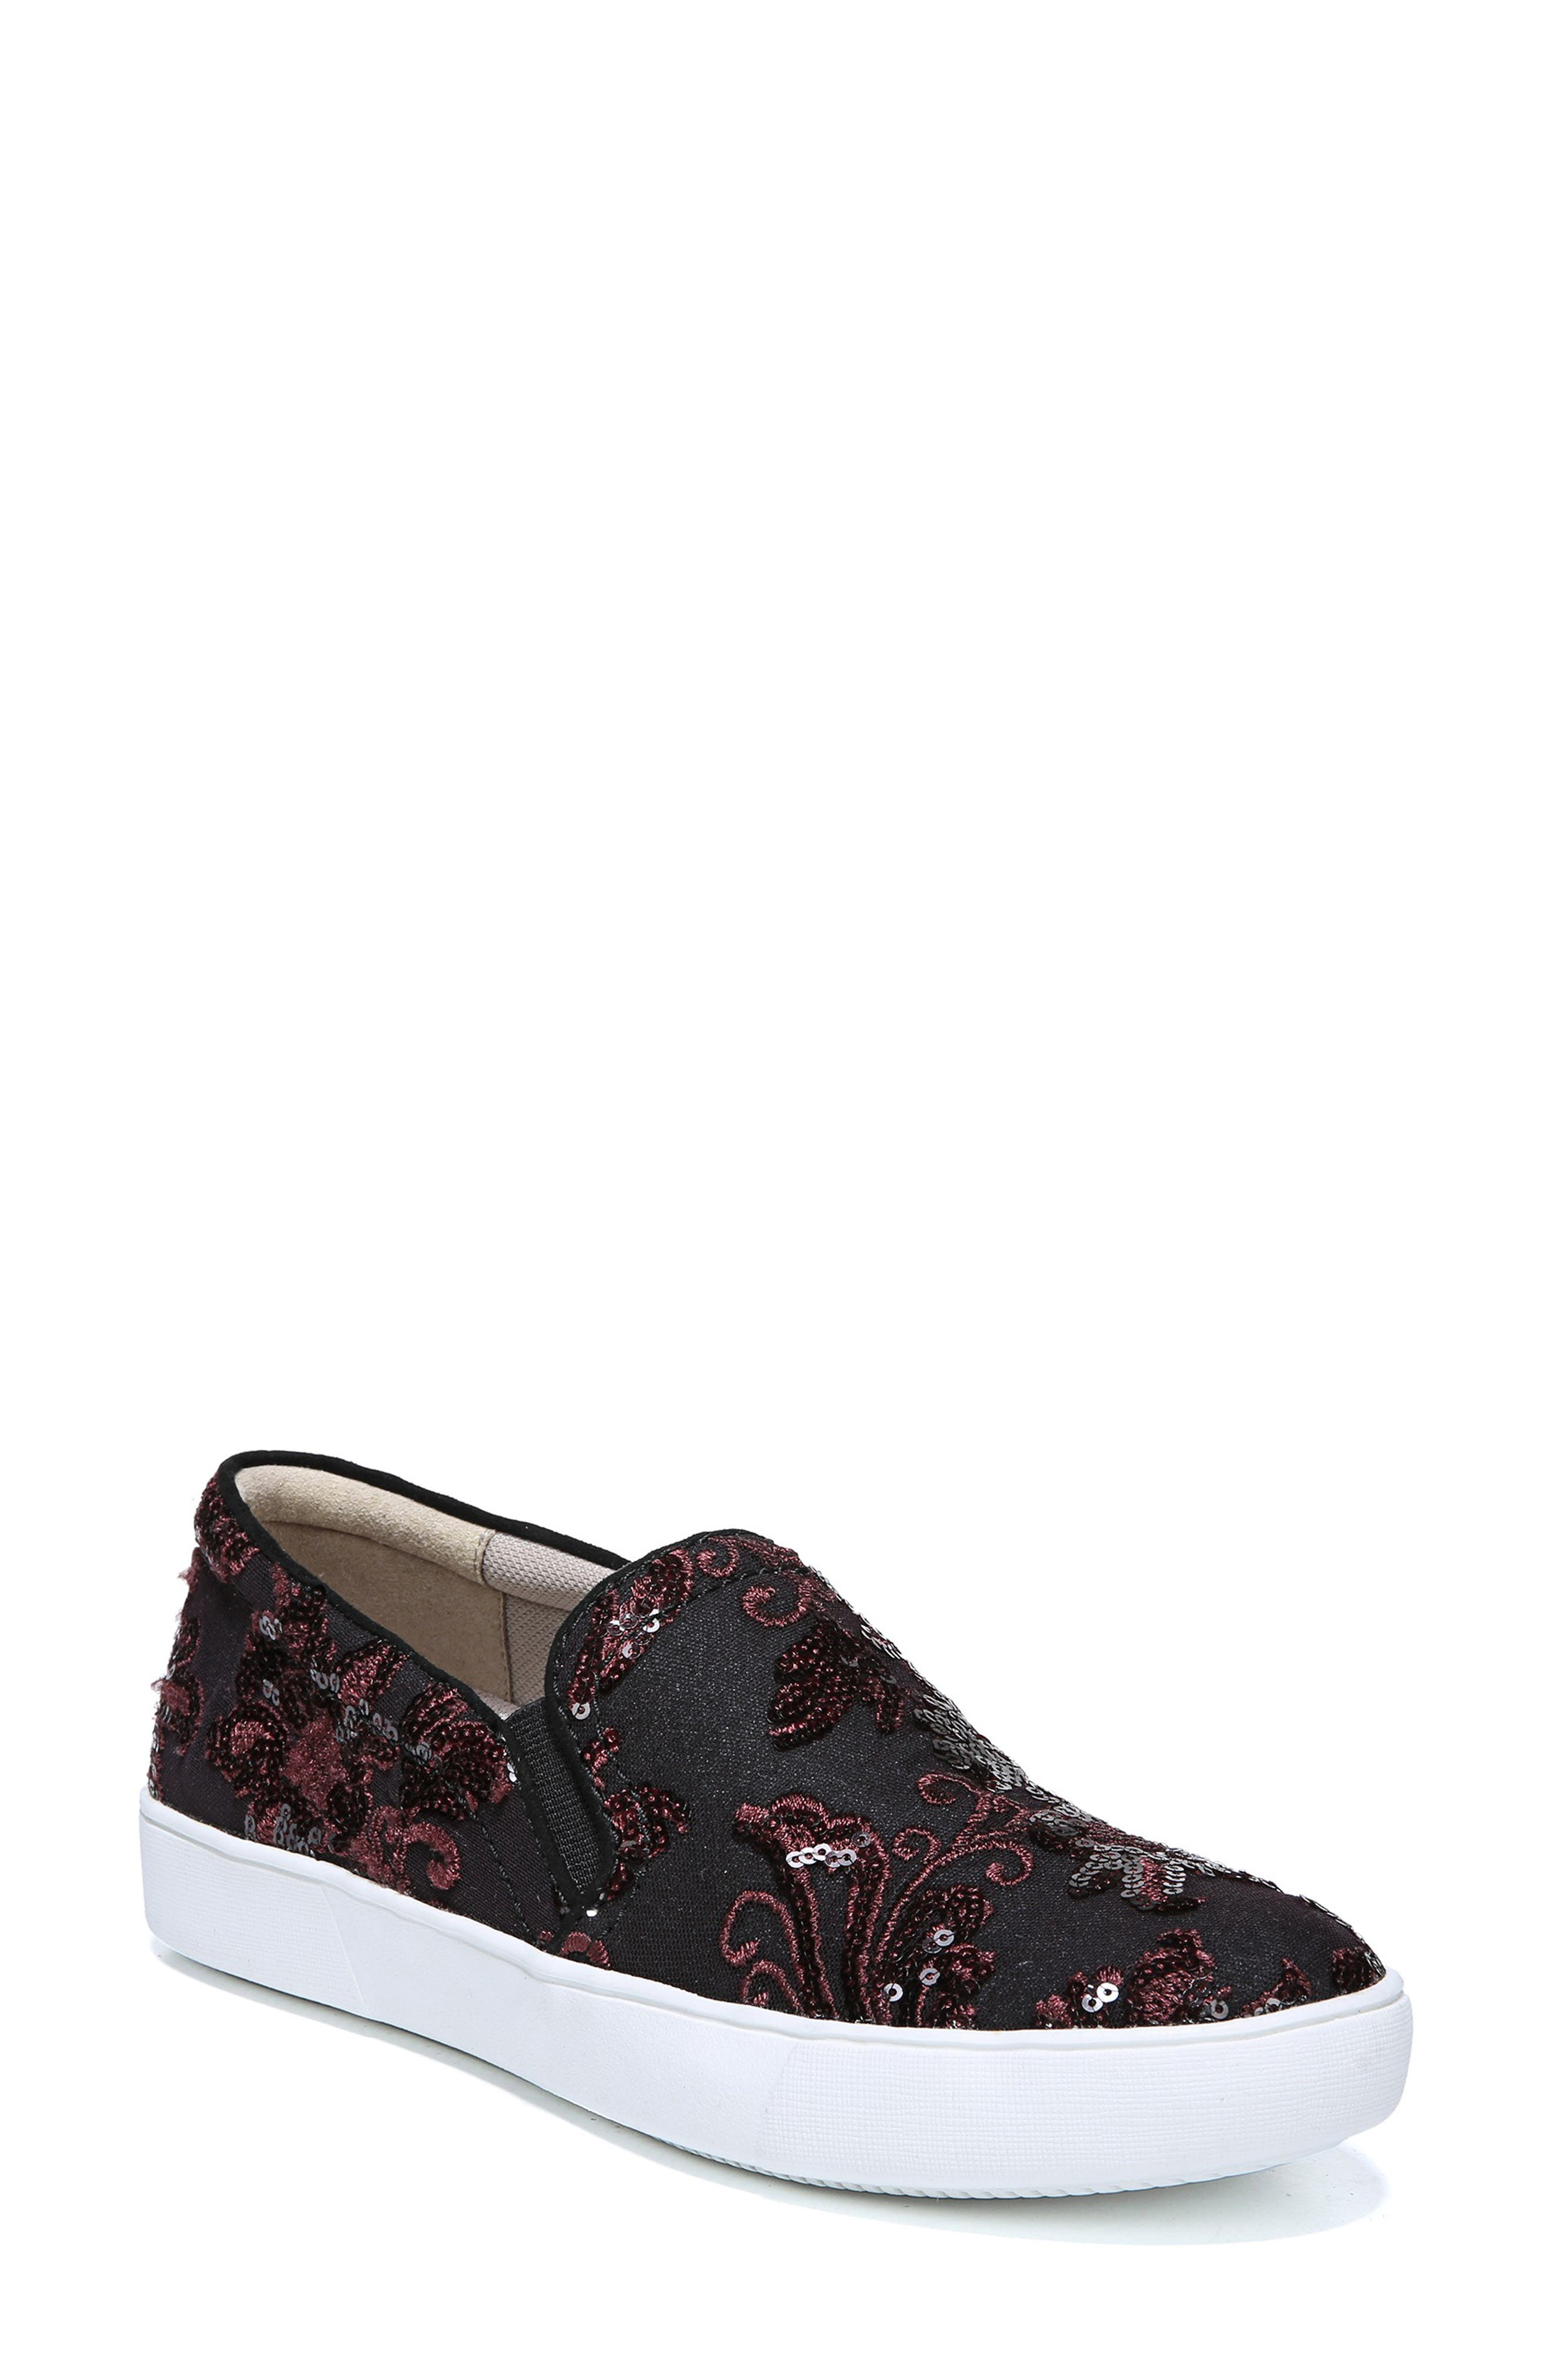 Marianne Slip-On Sneaker,                         Main,                         color, BURGUNDY EMBROIDERED